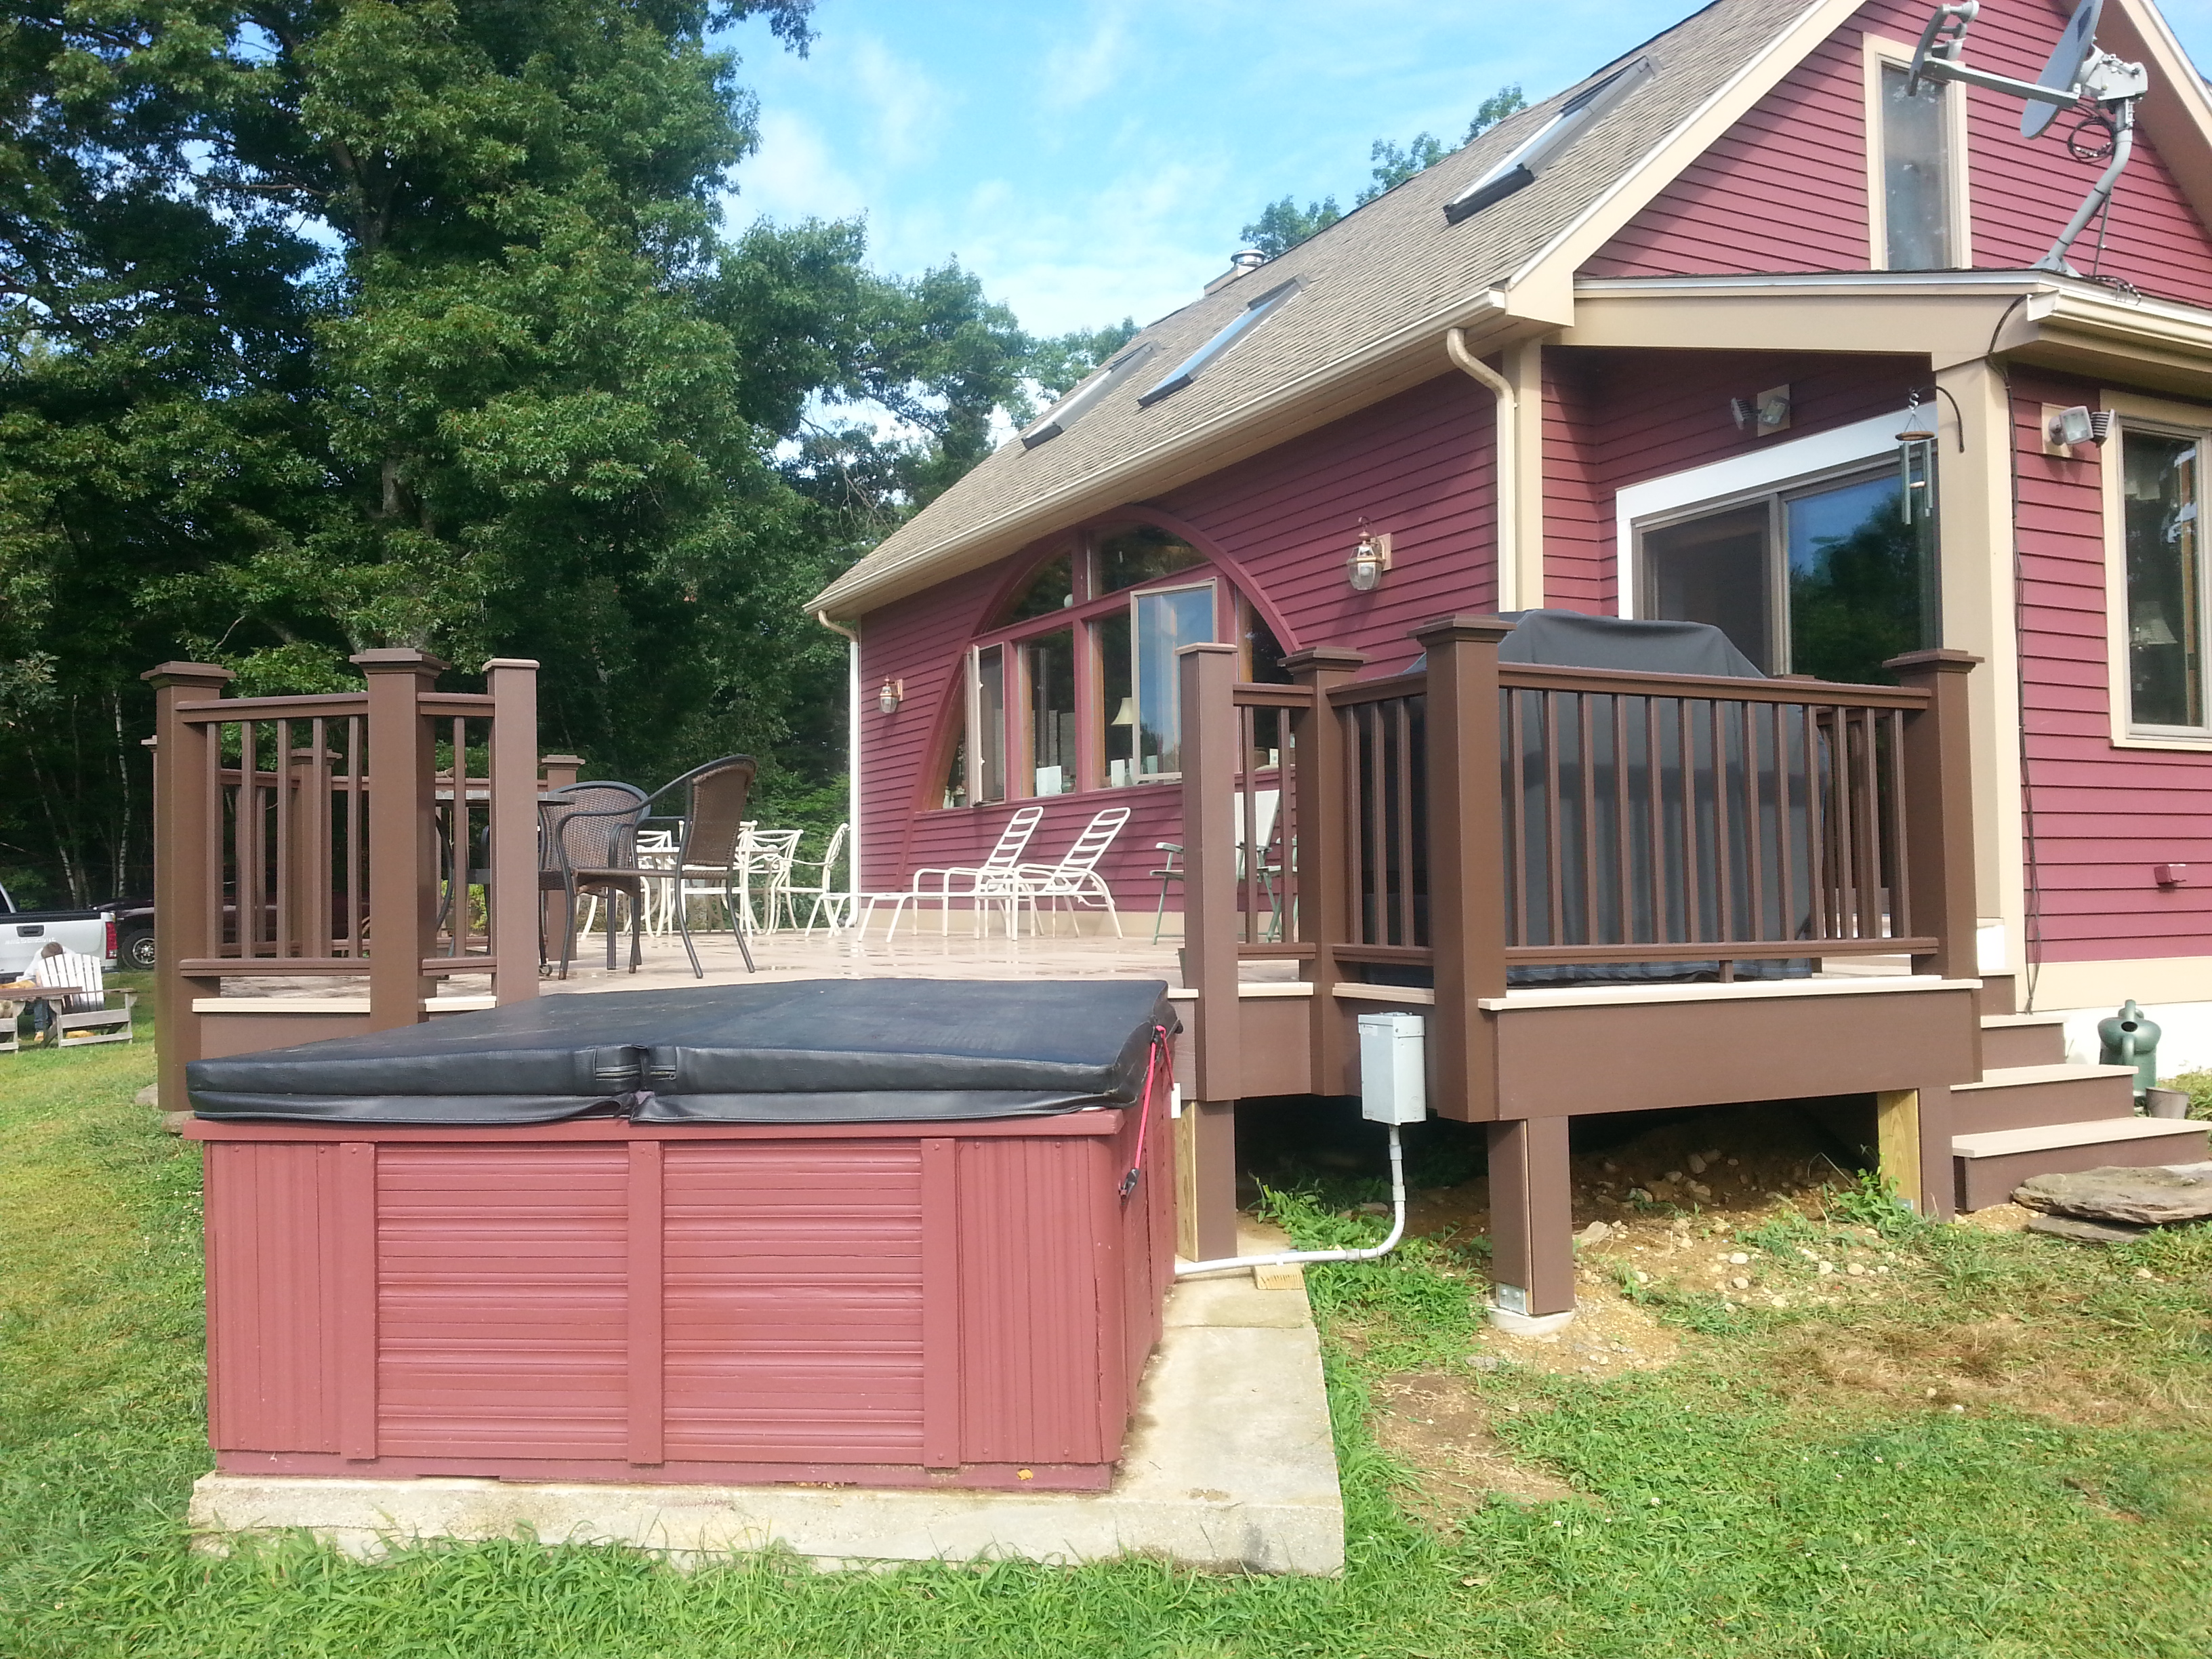 Azek Deck and Hot Tub